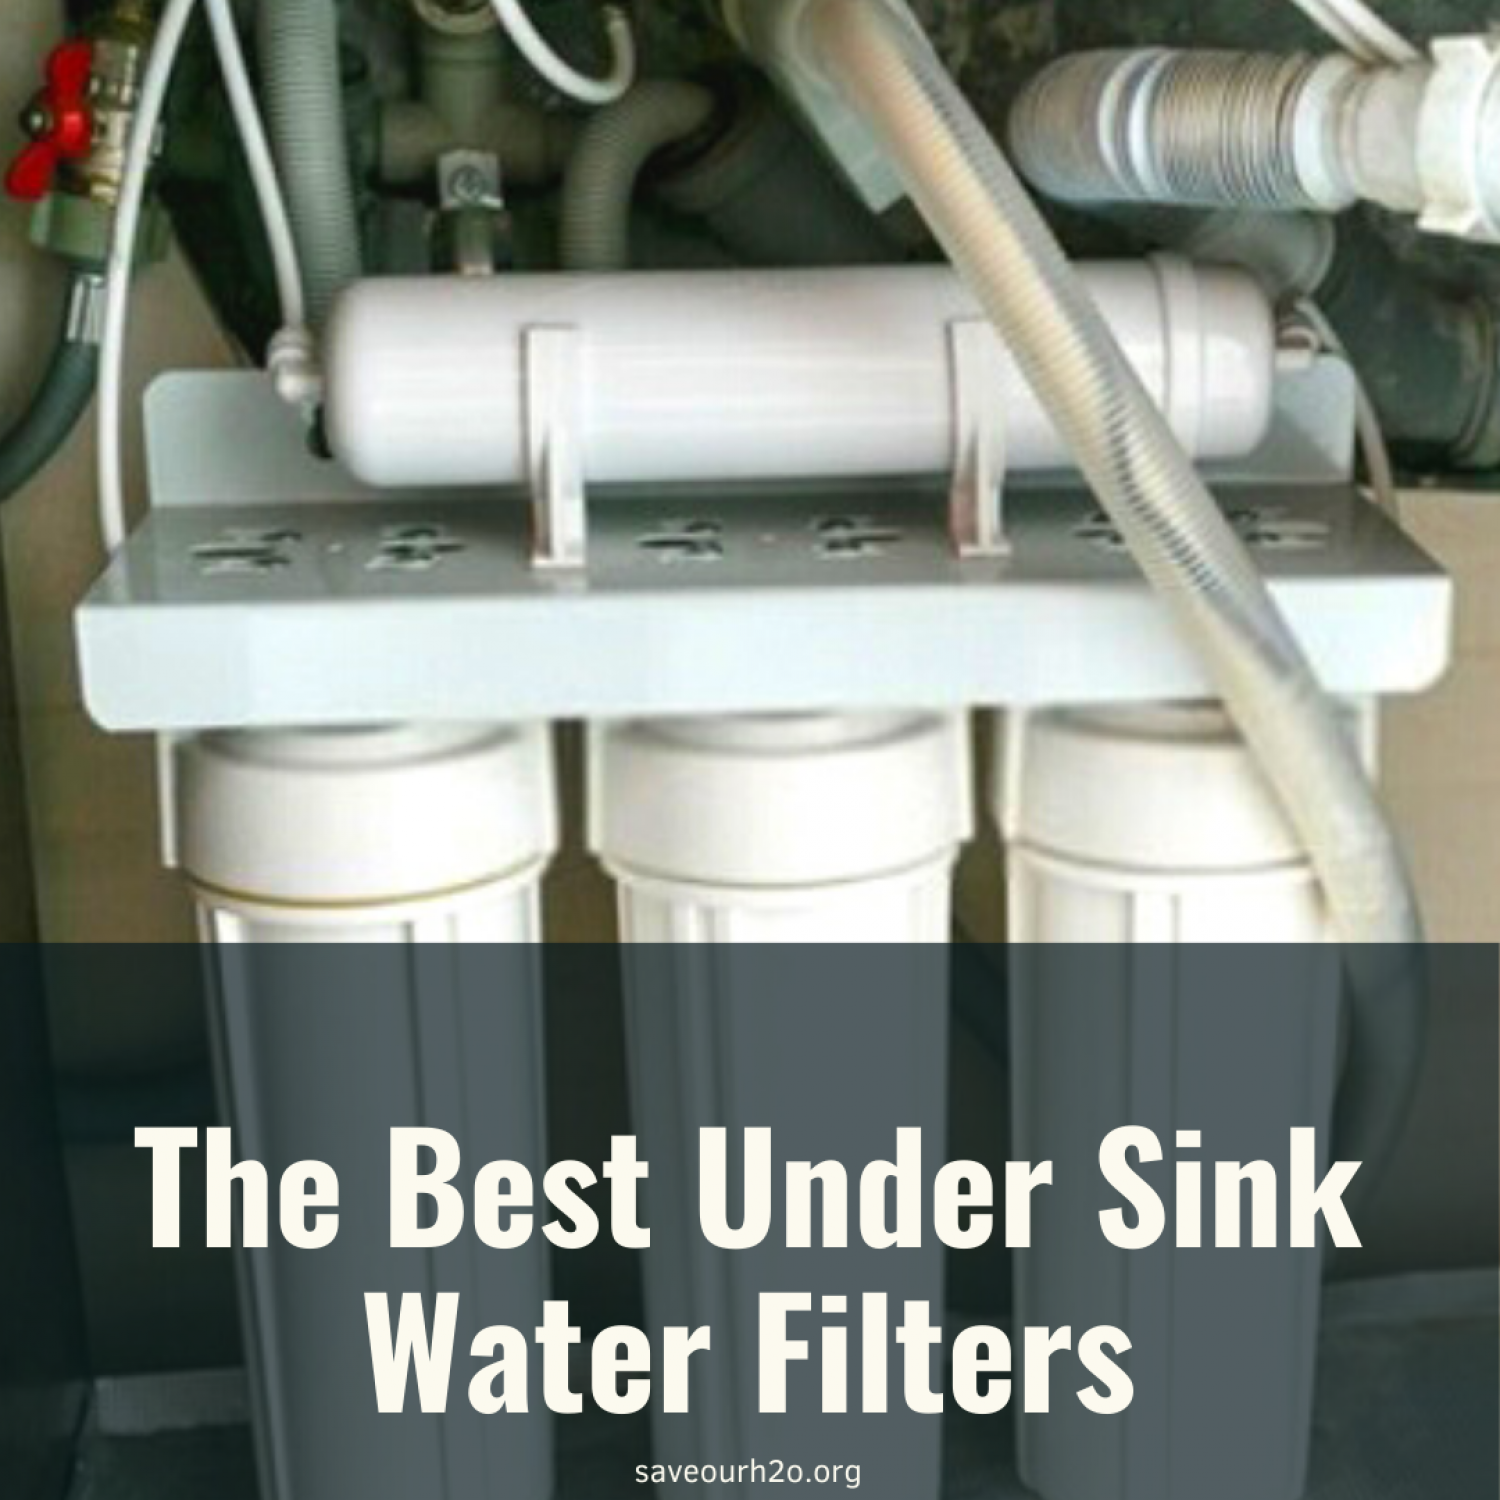 The Best Under Sink Water Filters for 2021 Infographic